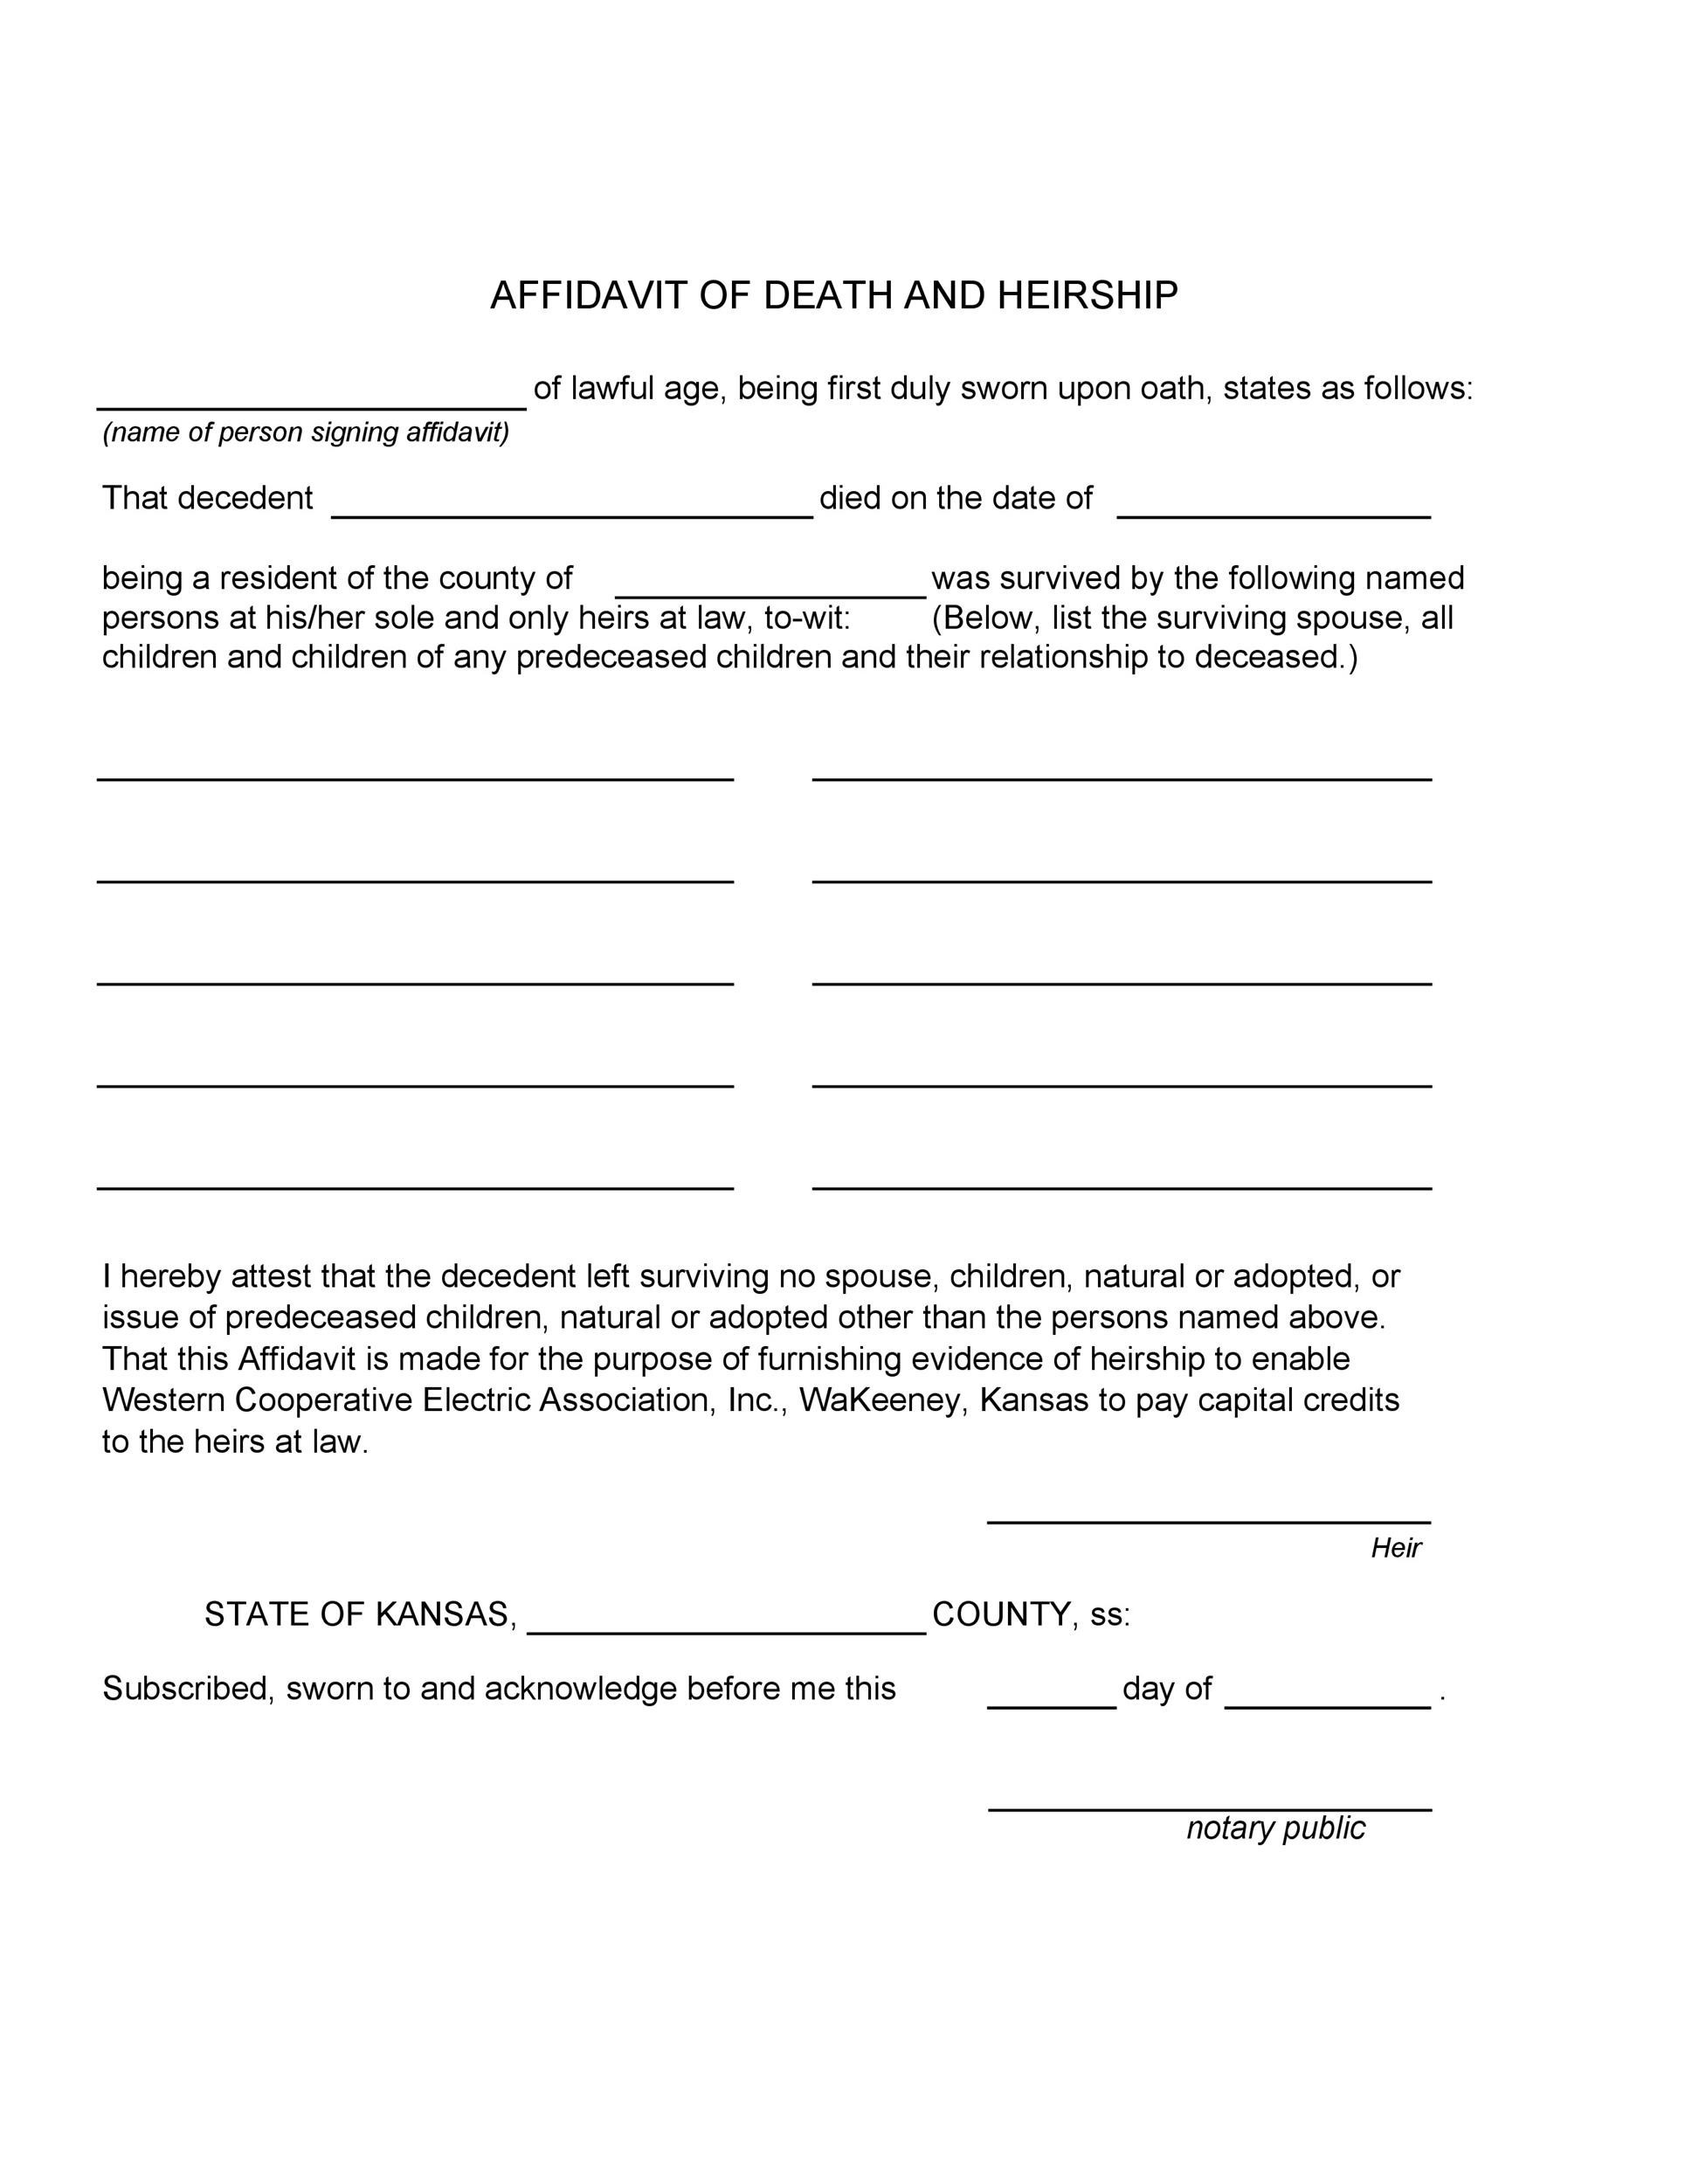 Affidavits Of Death